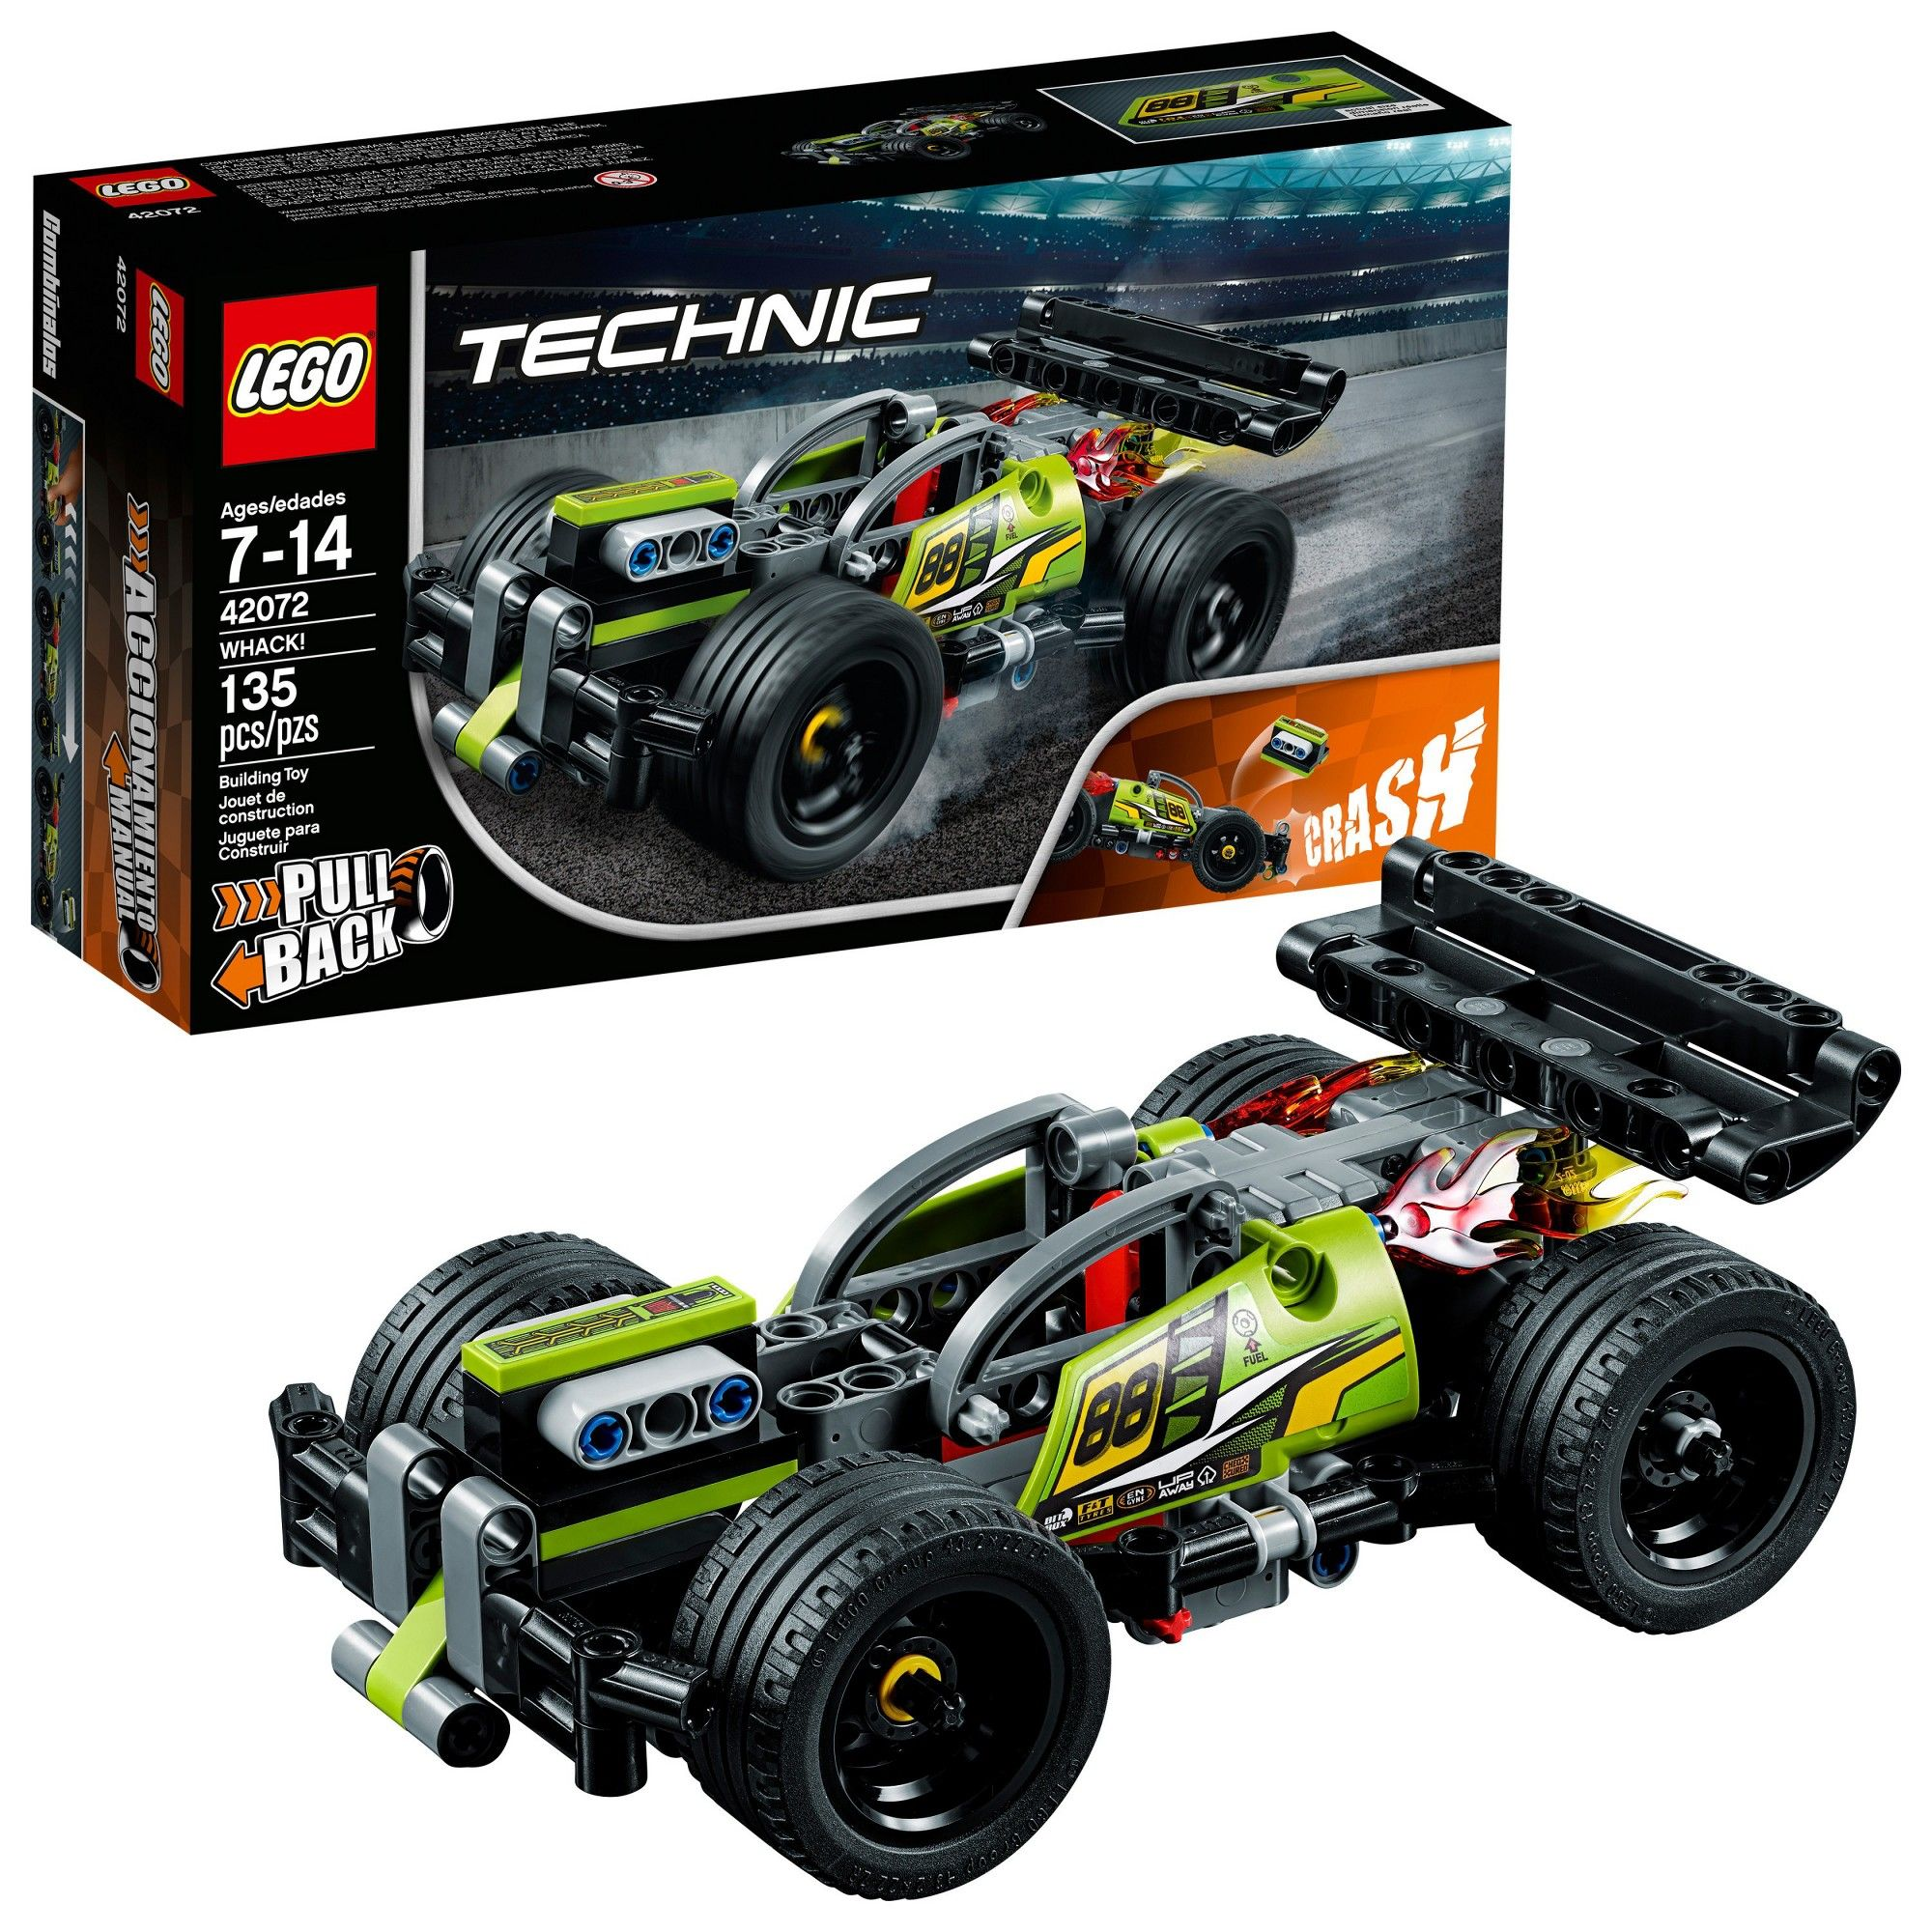 Lego Technic Whack Stem Stunt Racing Toy Car Building Kit For Creative Play 42072 Lego Technic Engineering Toys Building For Kids